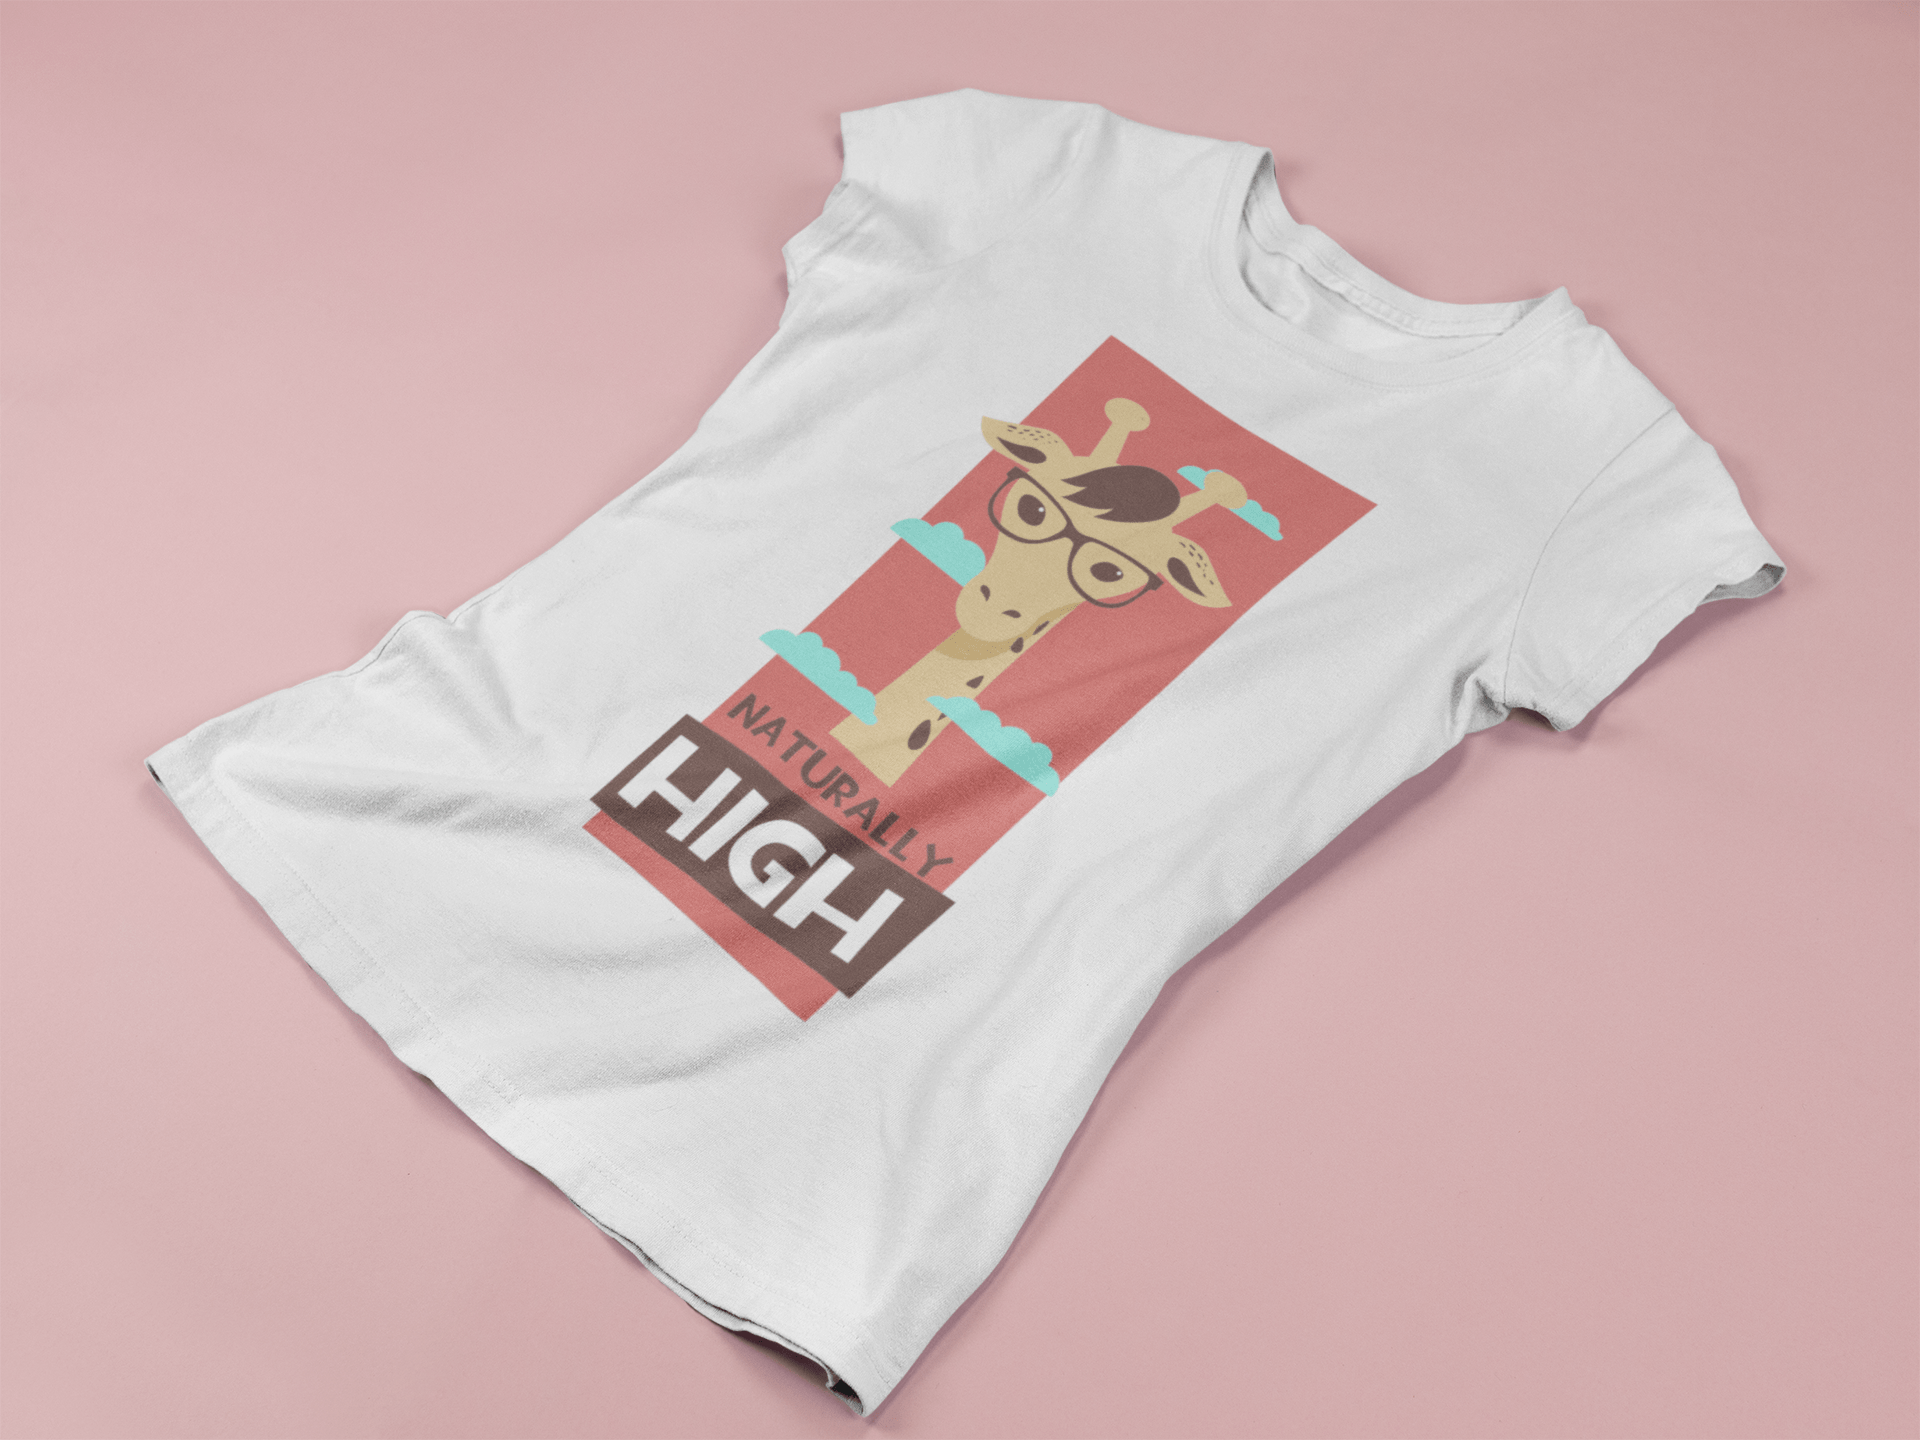 2018 Latest Trends in T-shirt Designs placeit 19